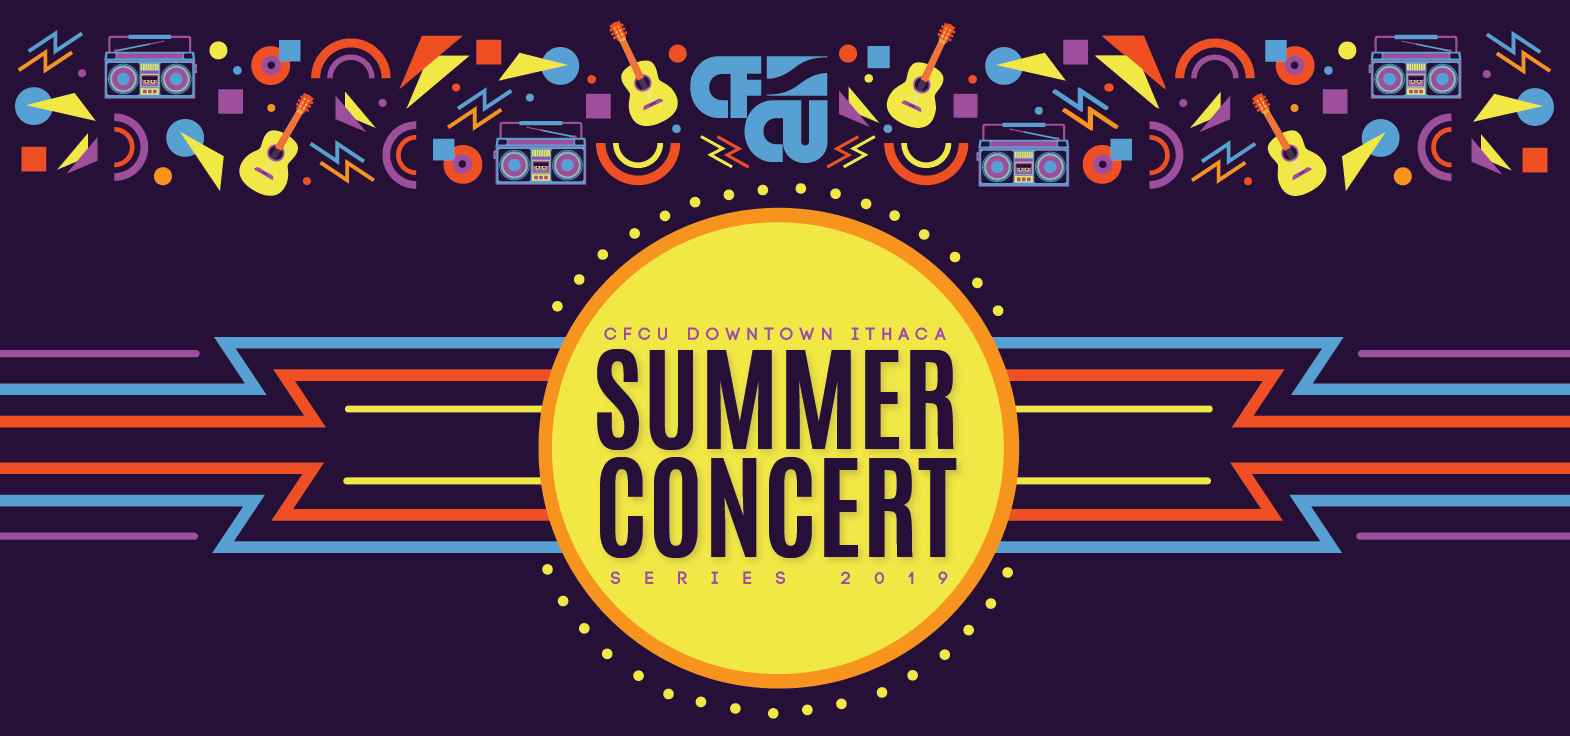 Summer Concert Series Image